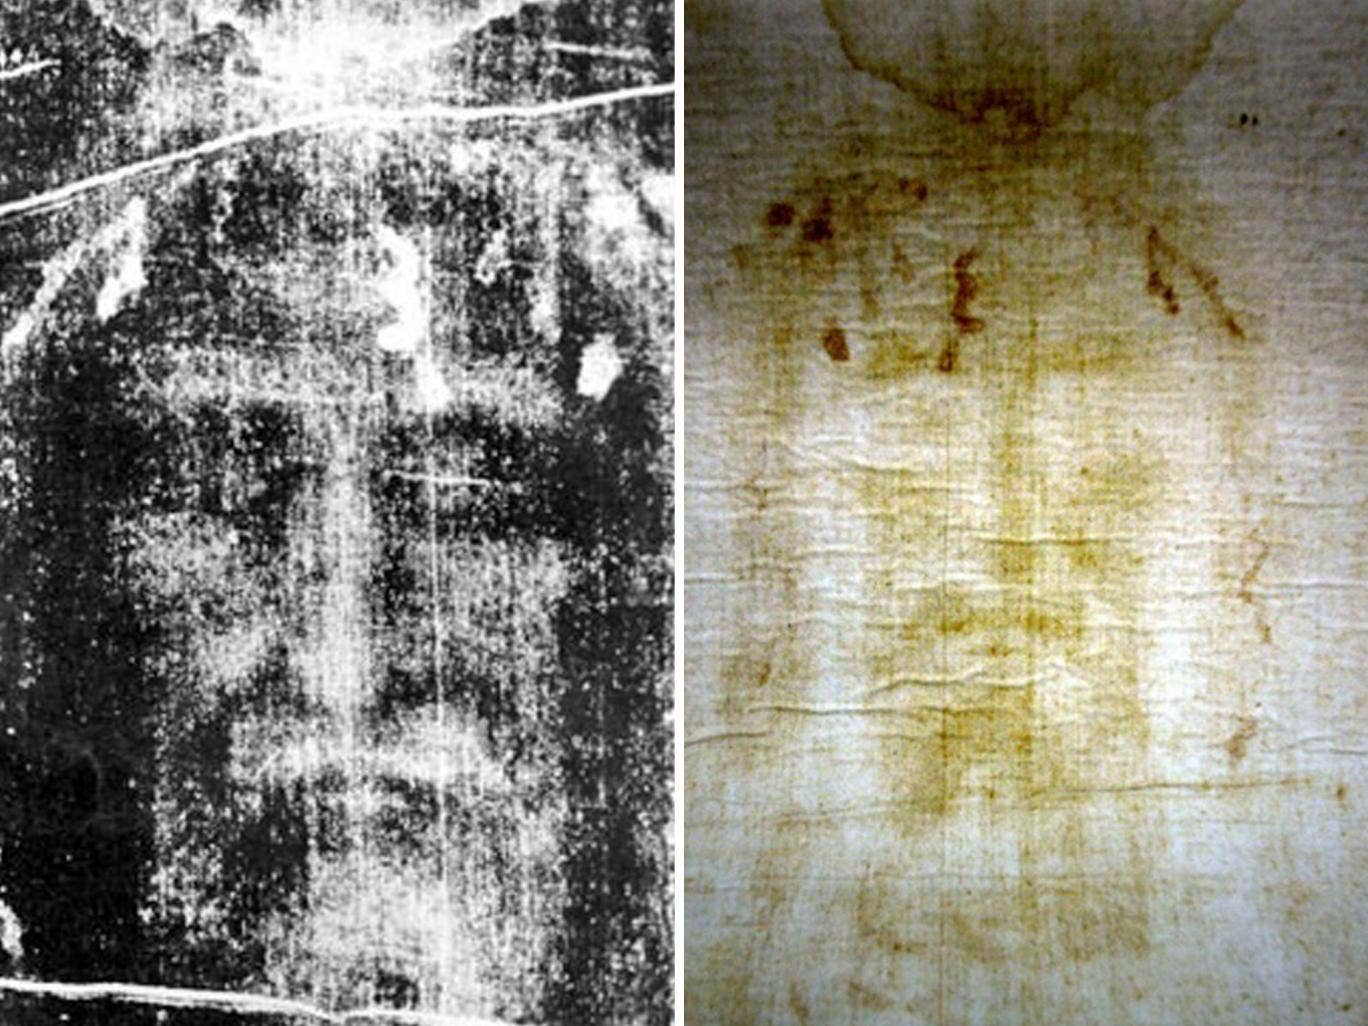 shroud of turin research paper New at shroud data: critical summary of shroud observations, data and hypotheses: version 40 archetype  read the critical summary to ponder the evidence and to make your own judgment.